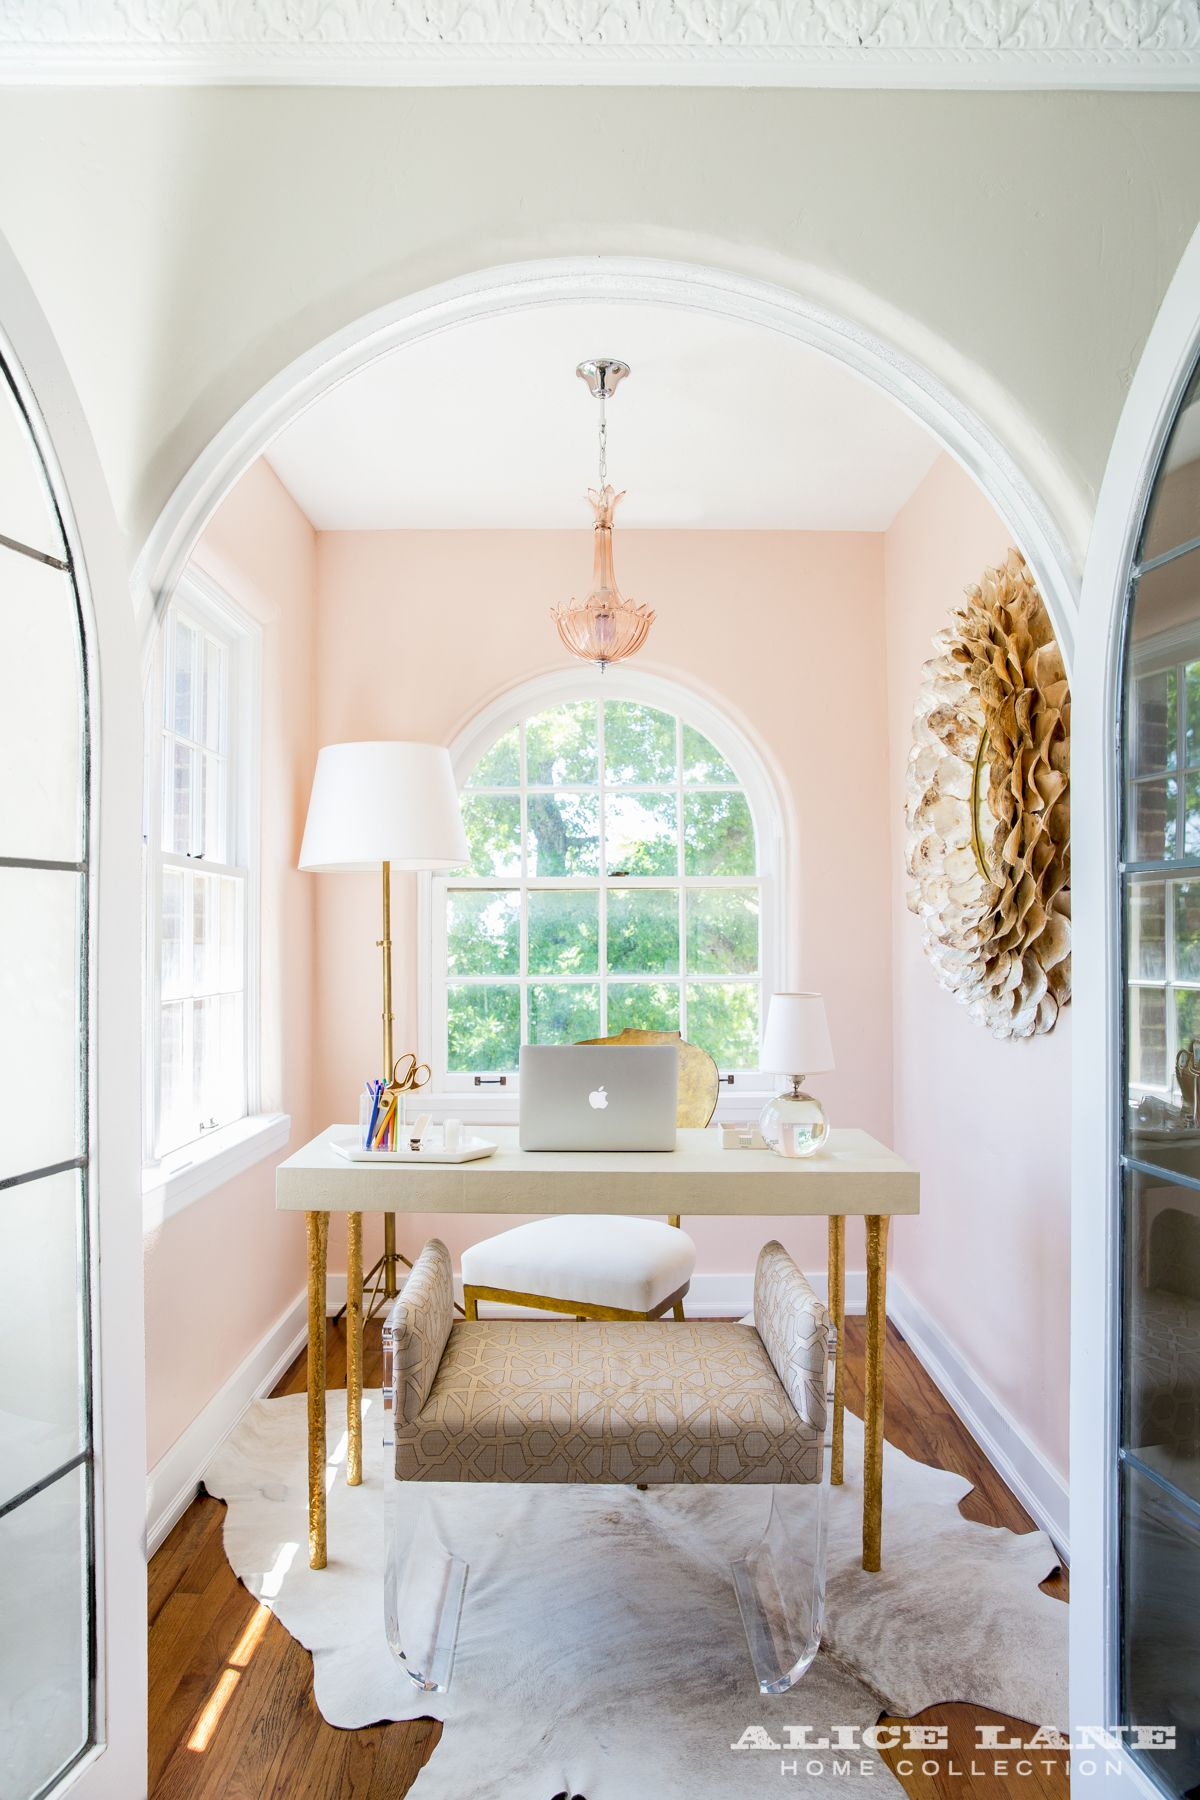 Show N\' Tell - Historic Ivy Flat Remodel | Alice, Tiny office and Spaces